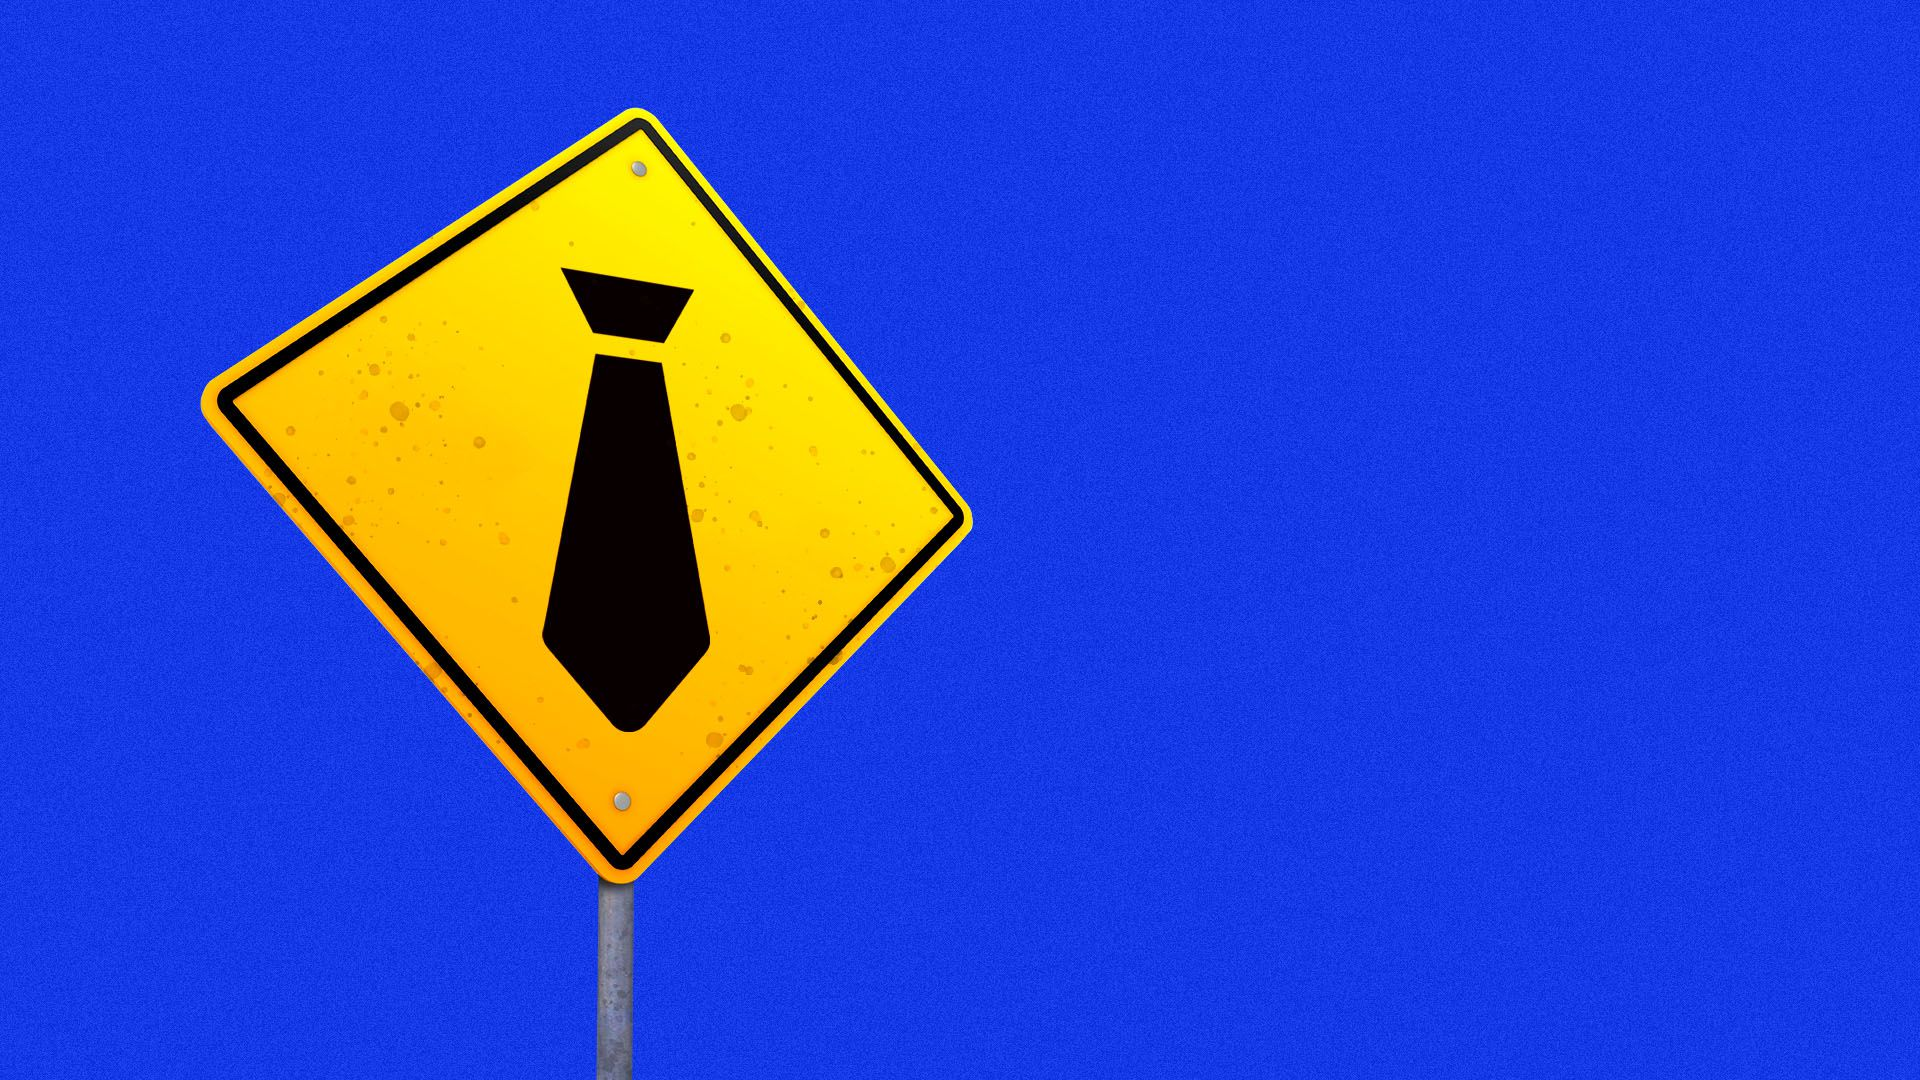 Illustration of a road caution sign with a tie icon on it